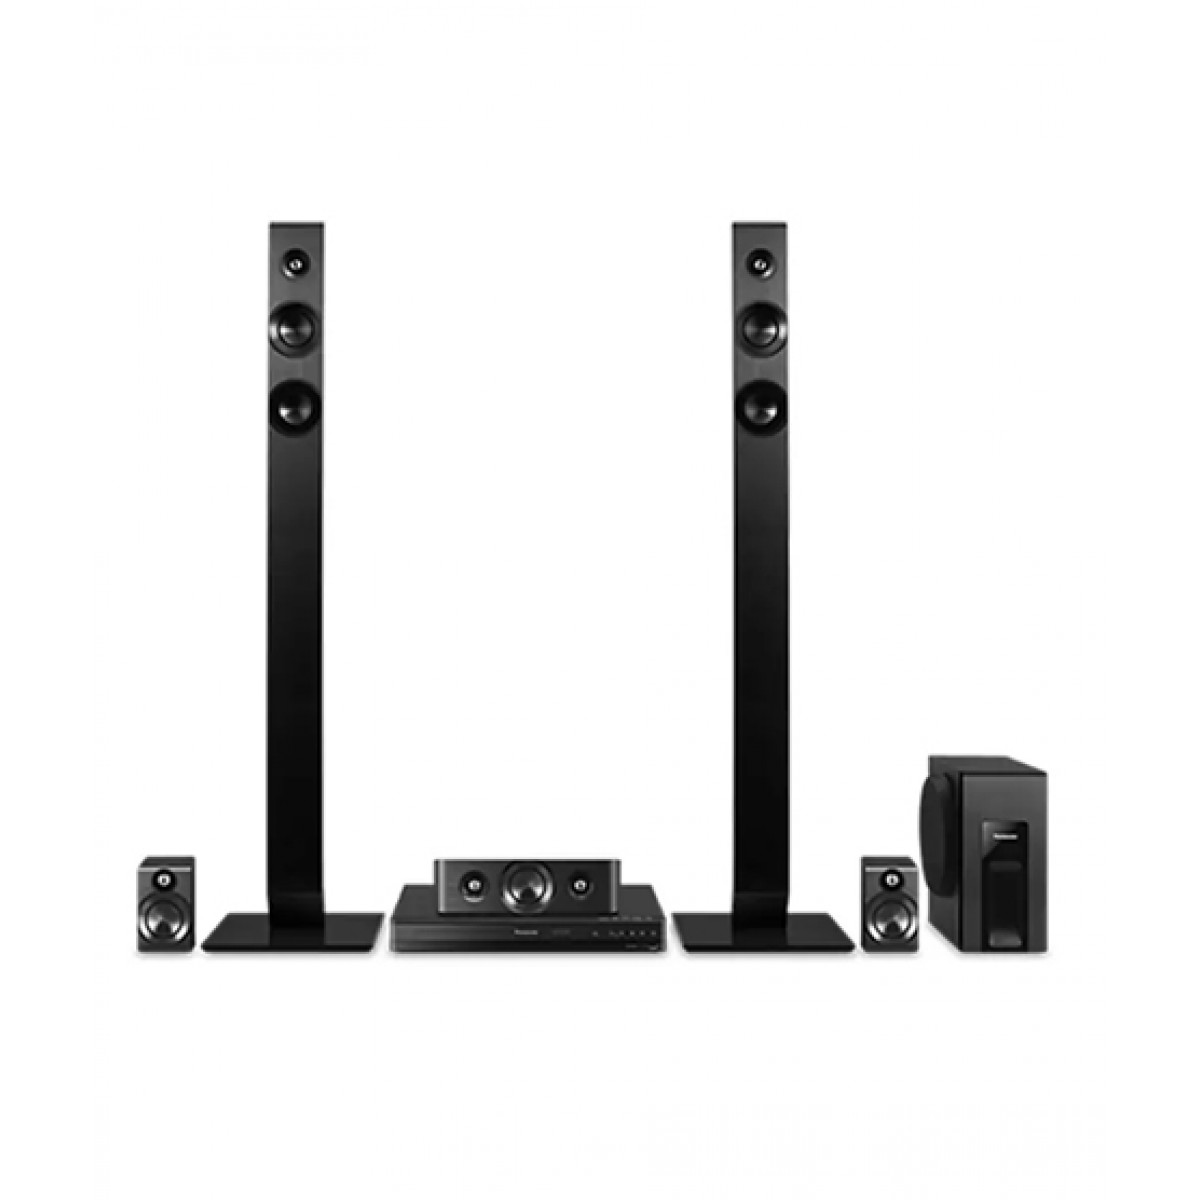 Panasonic 5.1 Channel DVD Home Theater System (HX166)